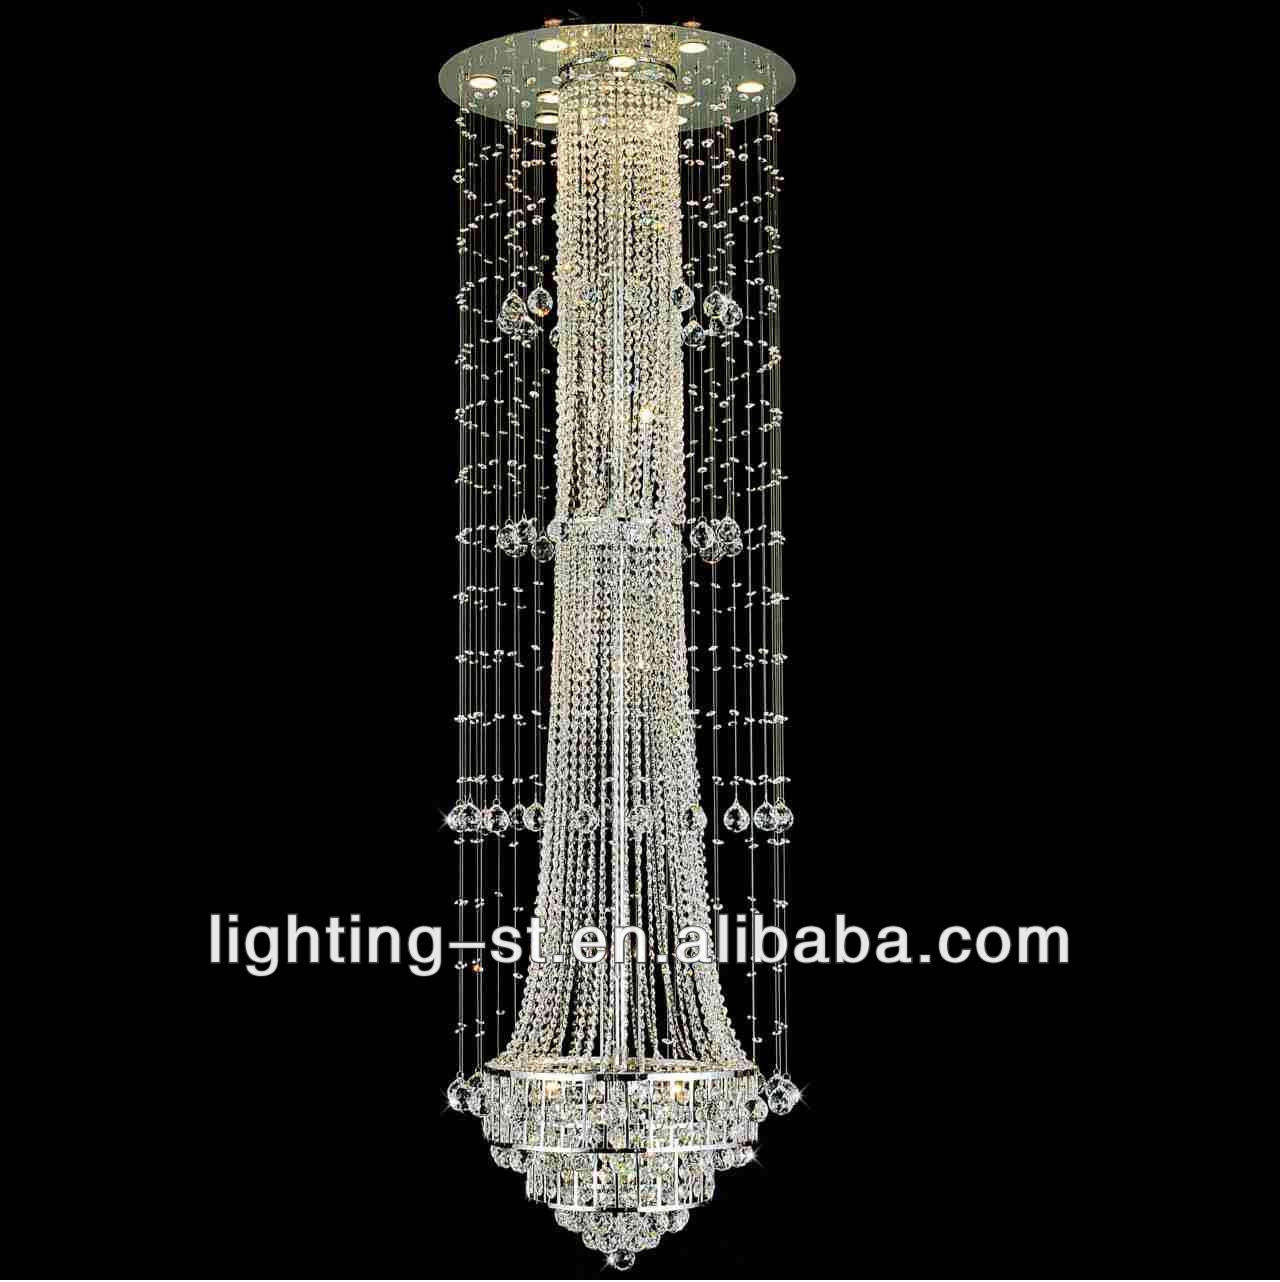 '' chateaux modern foyer crystal chandeliers with mirror  - '' chateaux modern foyer crystal chandeliers with mirror stainless steelbase hcc  buy big modern chandeliersmodern chandelier for highceilings